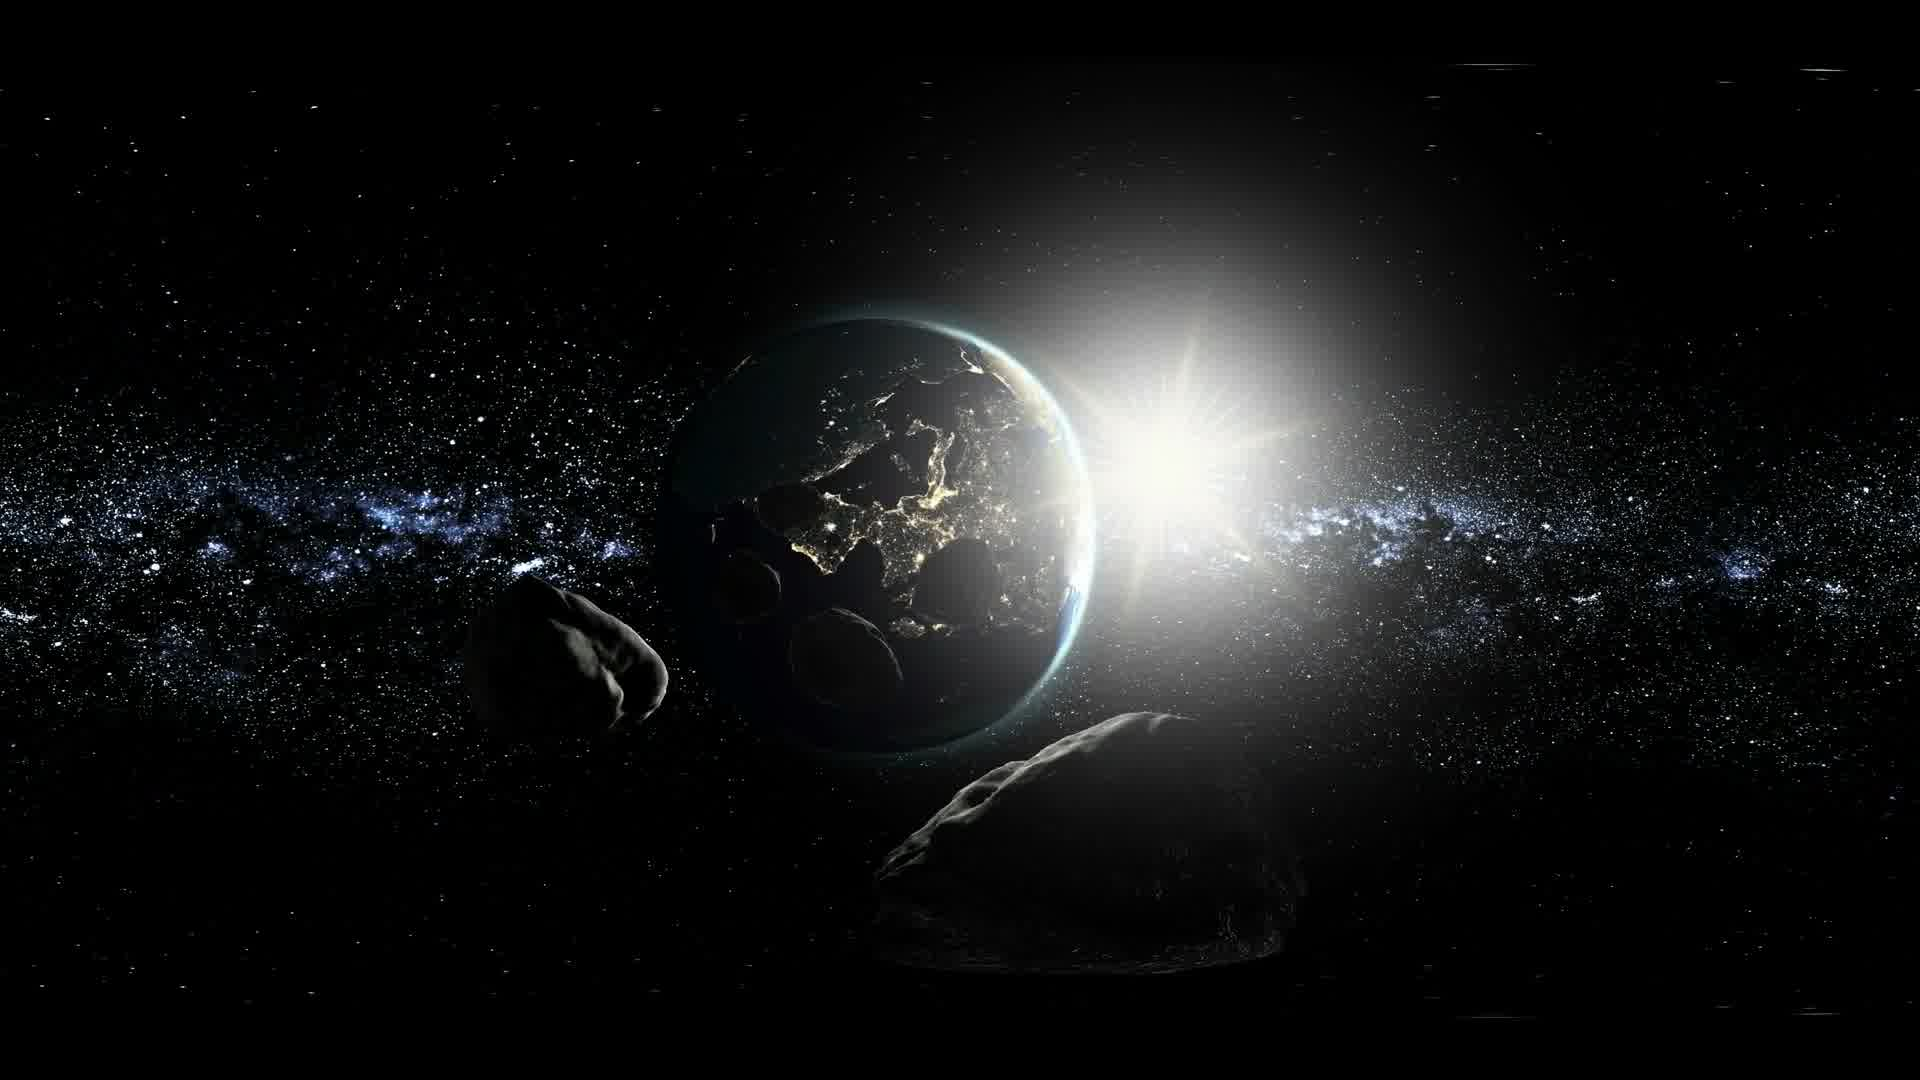 vr 360. asteroid in space fly to earth. virtual reality video. Elements of this image furnished by NASA